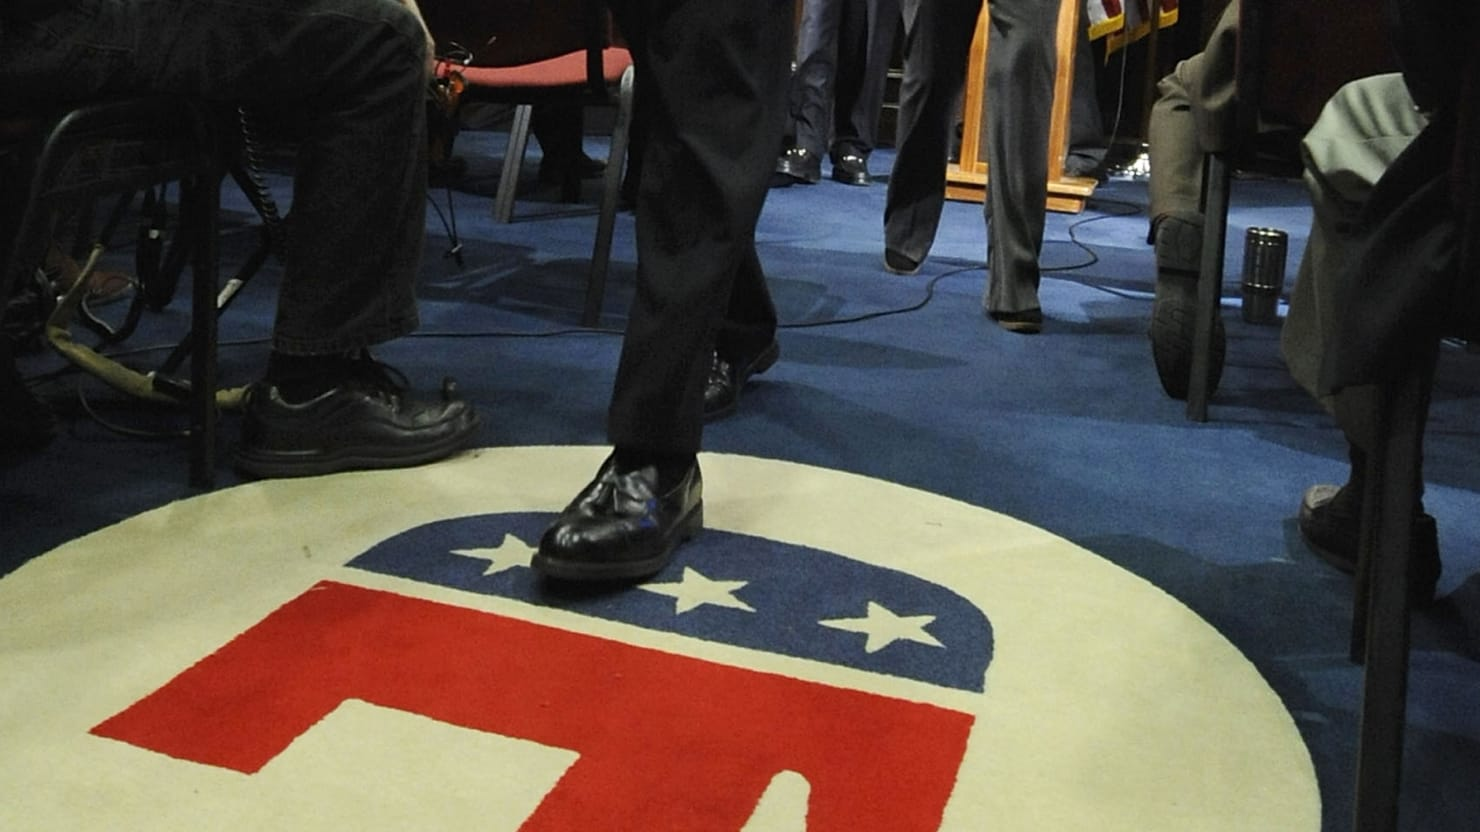 The GOP's Incredible Shrinking Big Tent